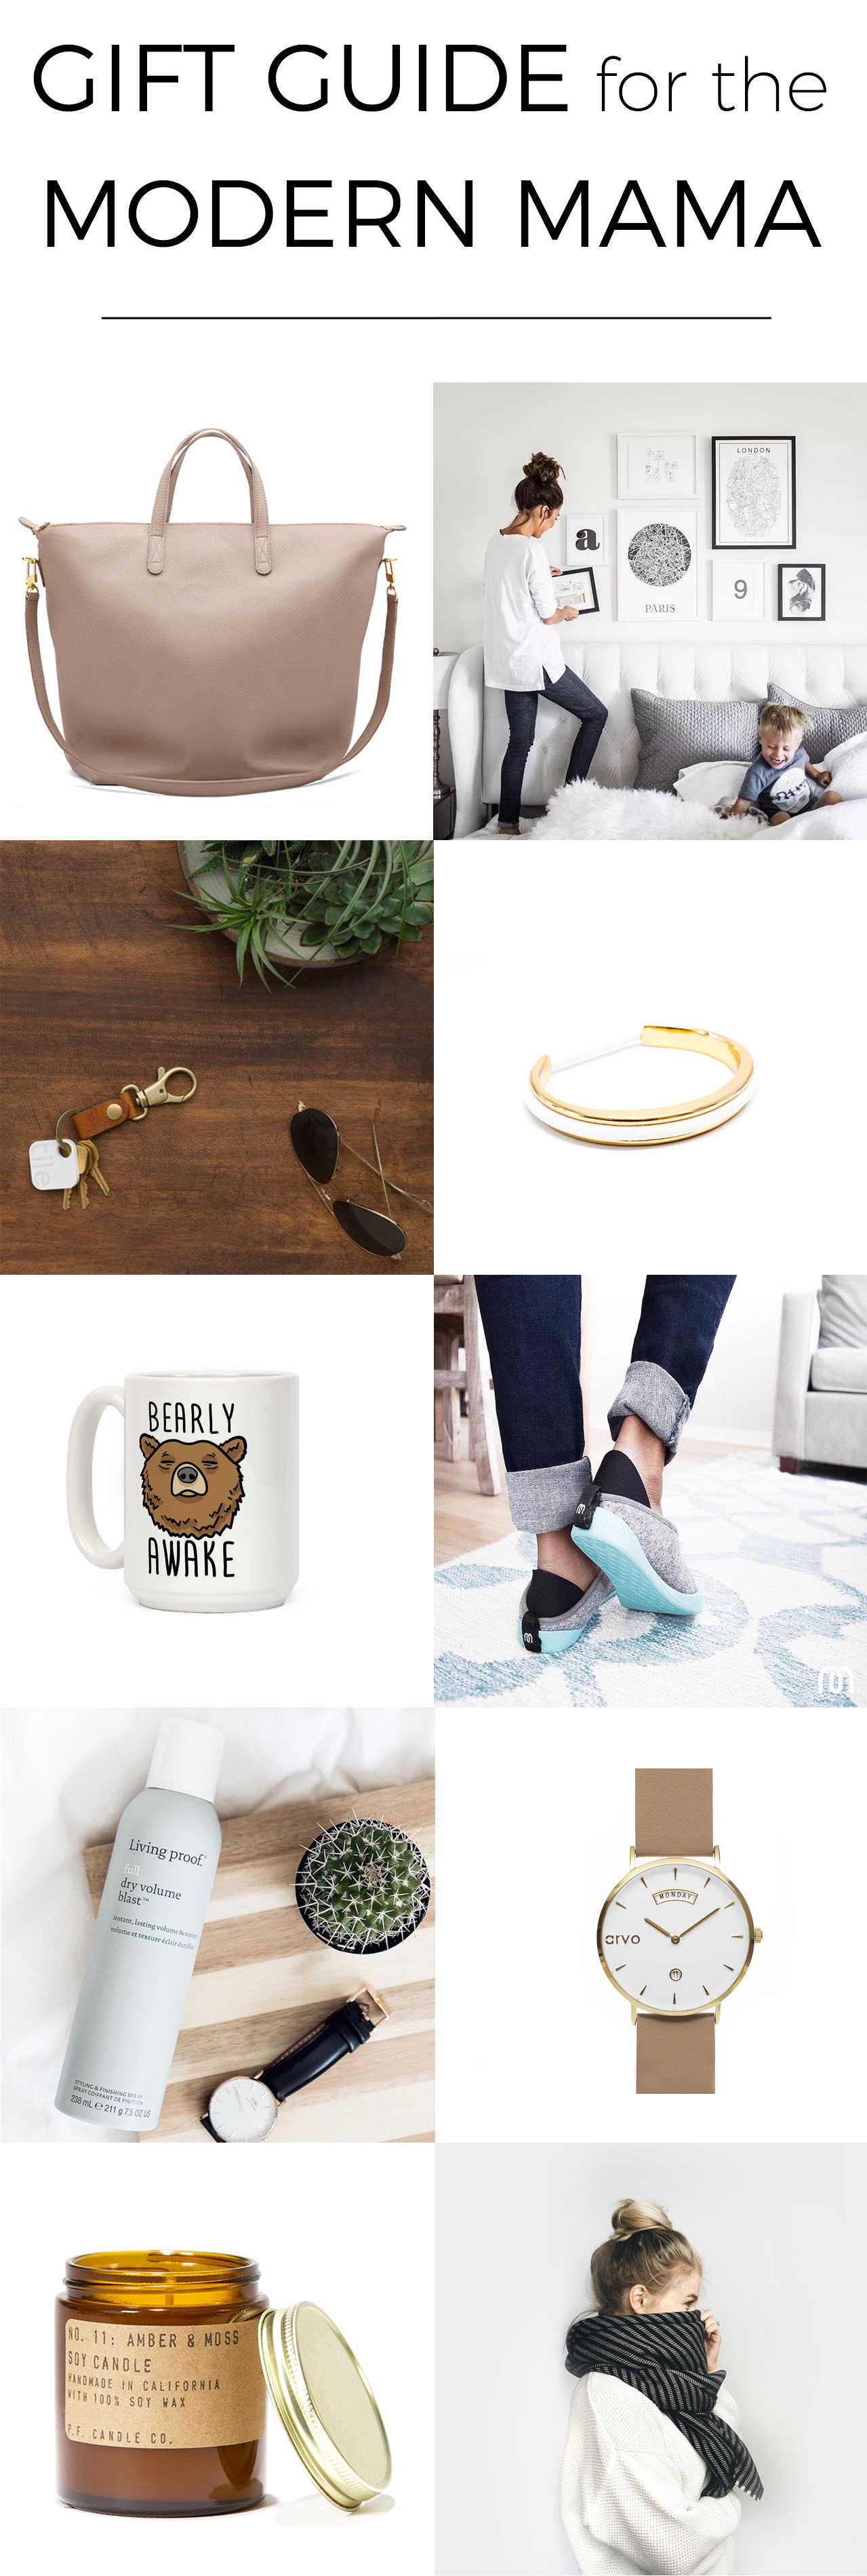 For my fellow baby-wrangling mamas who've been too busy to work on their own wish list! #giftguide